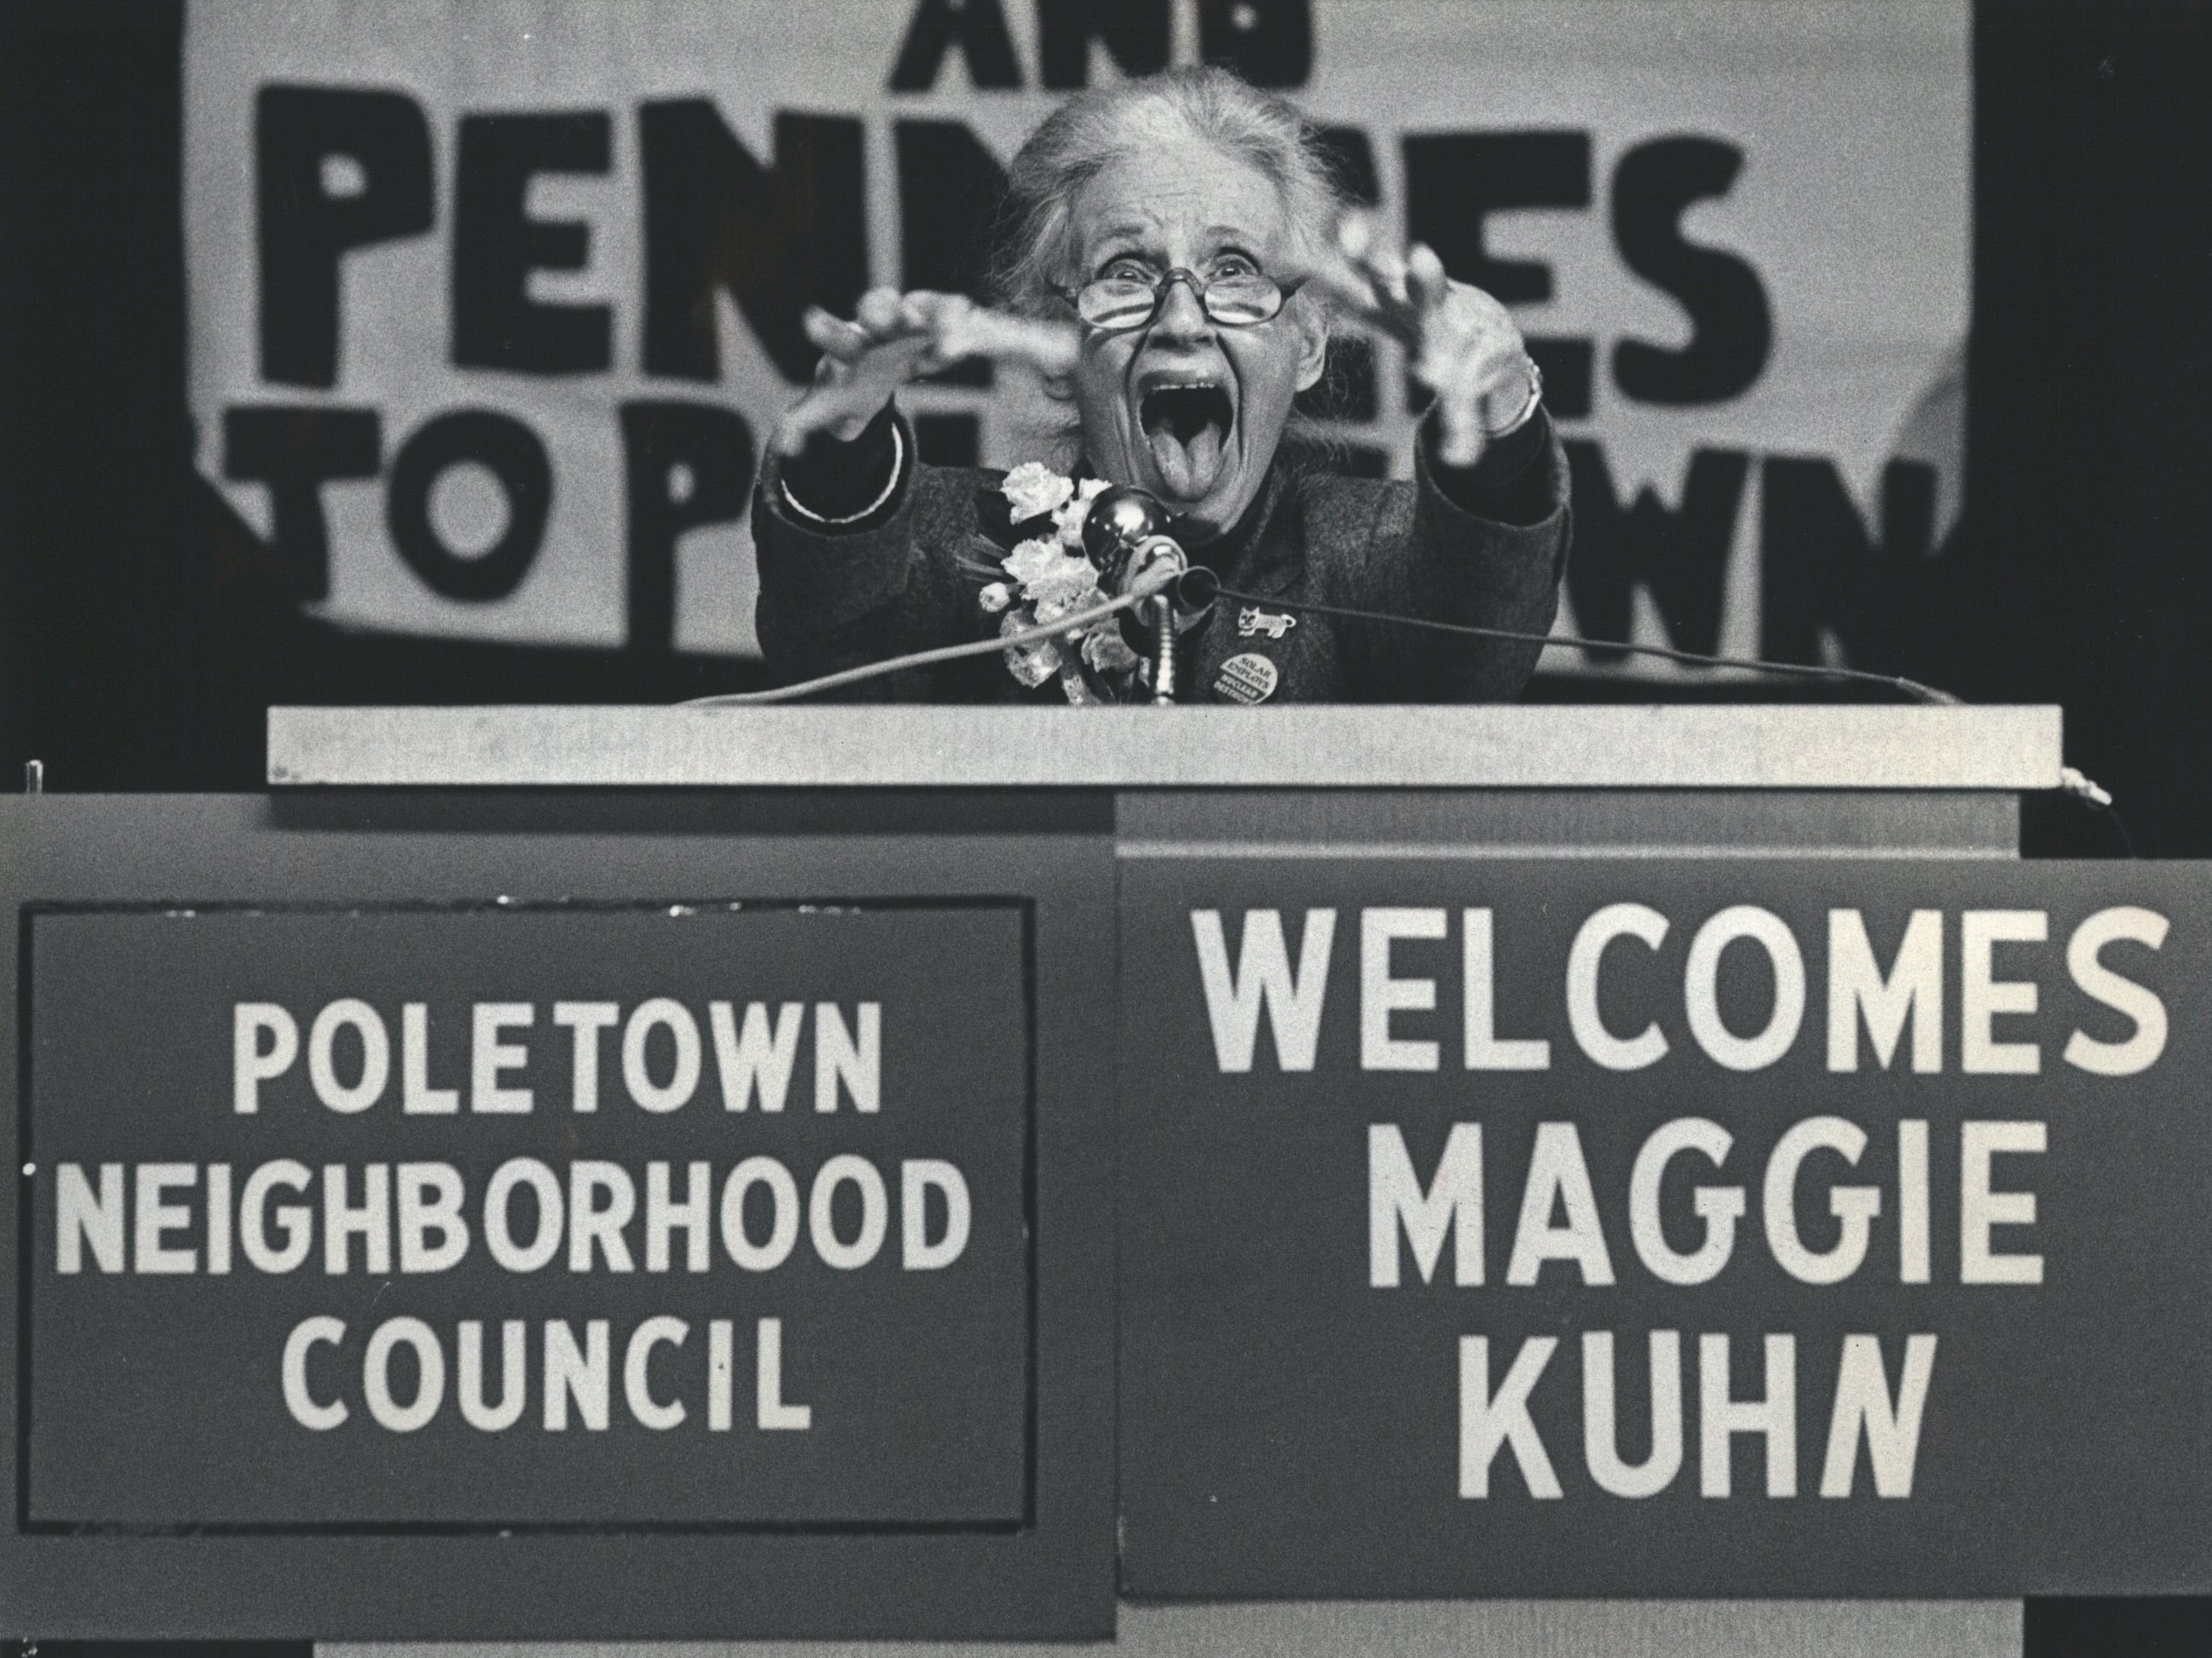 Maggie Kuhn, founder of the Gray Panthers, a national advocacy group for the aged, blasted General Motors Corp. and the City of Detroit in a speech to Poletown supporters and residents Sunday at Immaculate Conception Church.